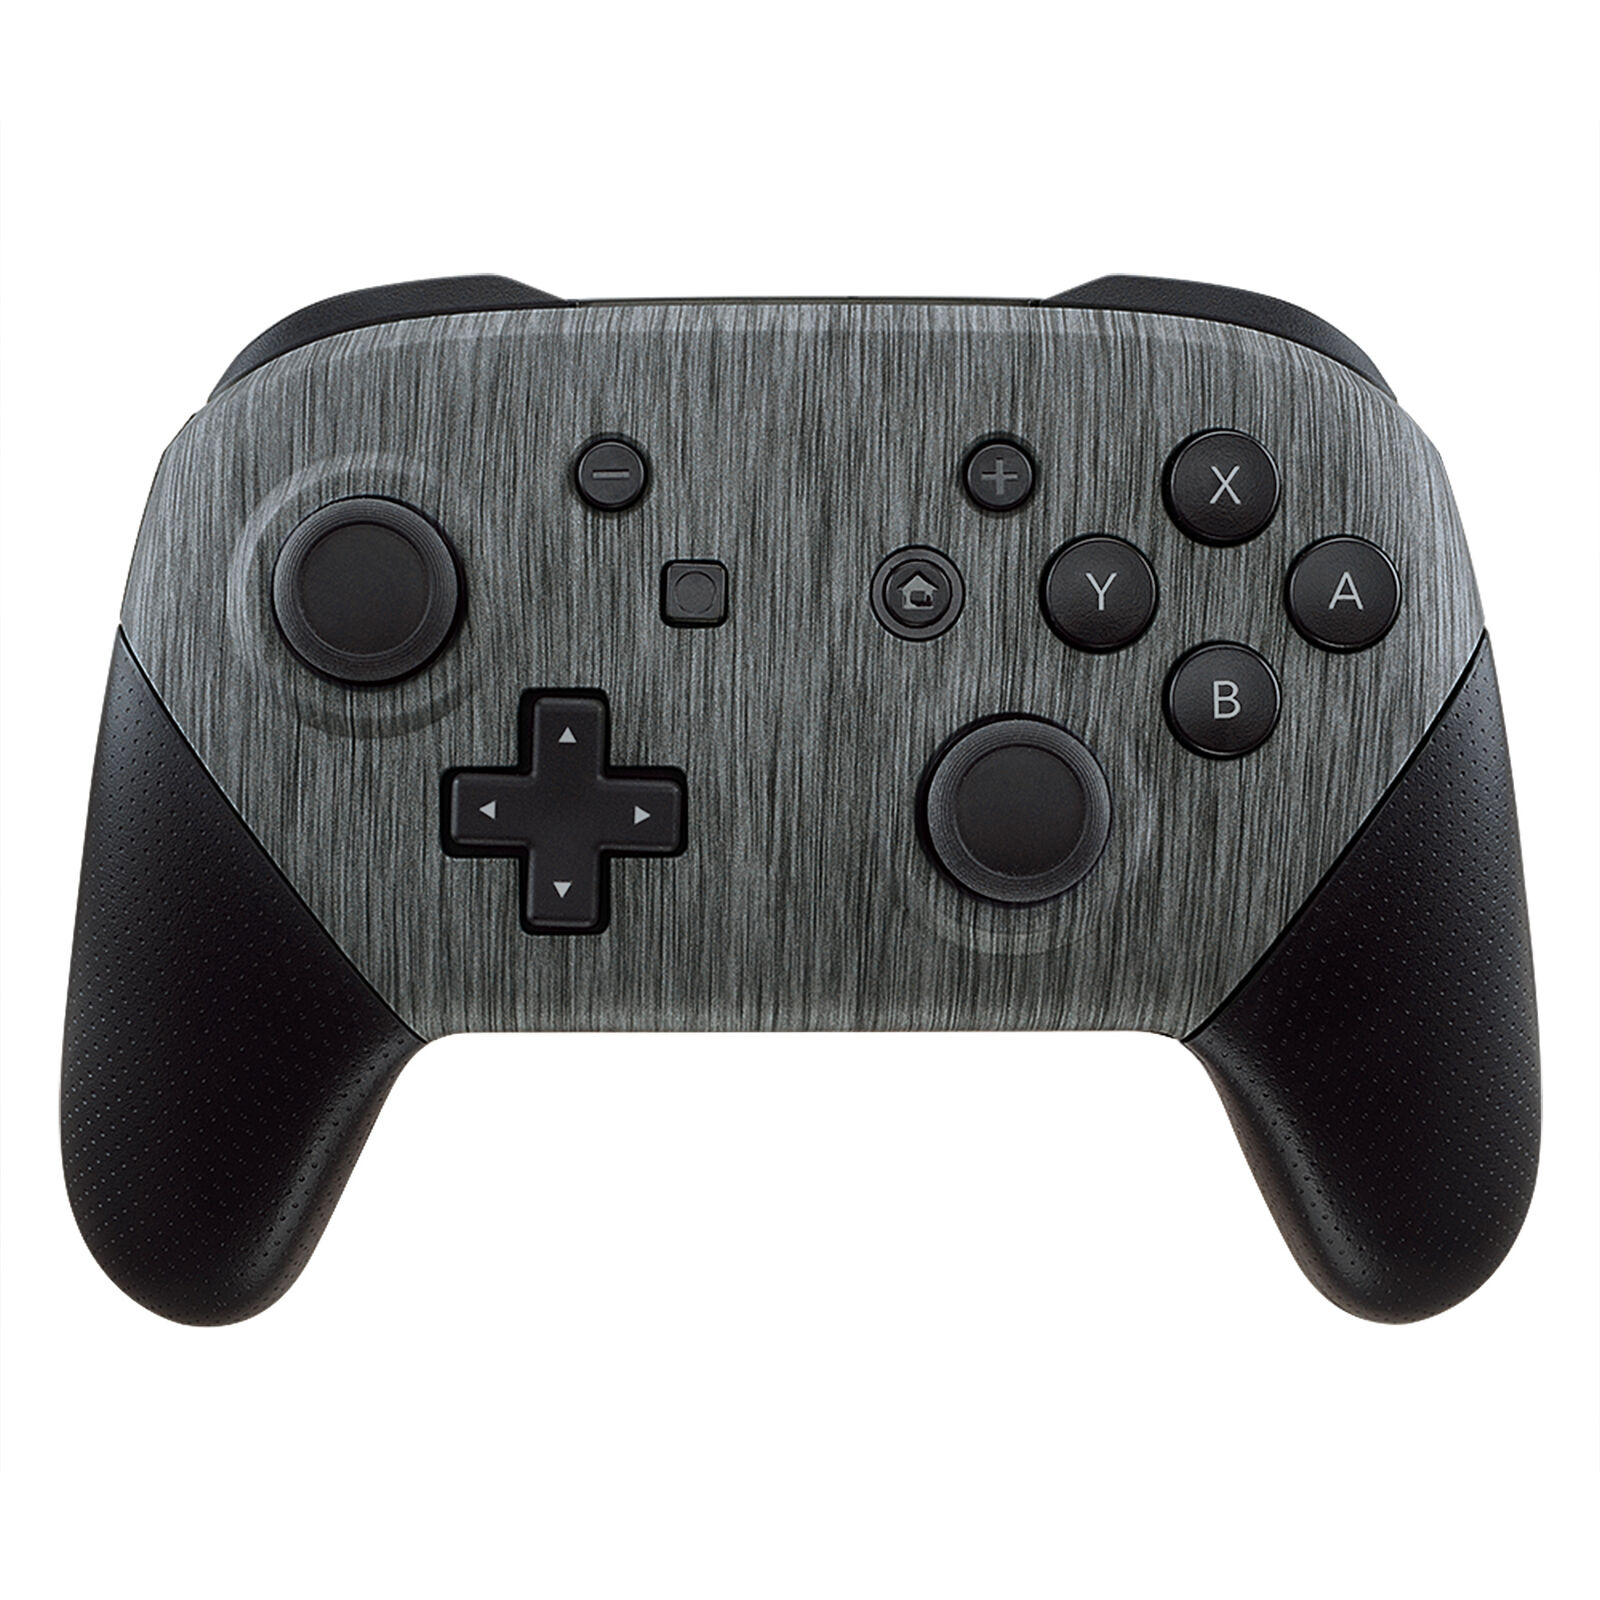 Nintendo Switch Pro Controller Black and Brushed Metal Faceplate